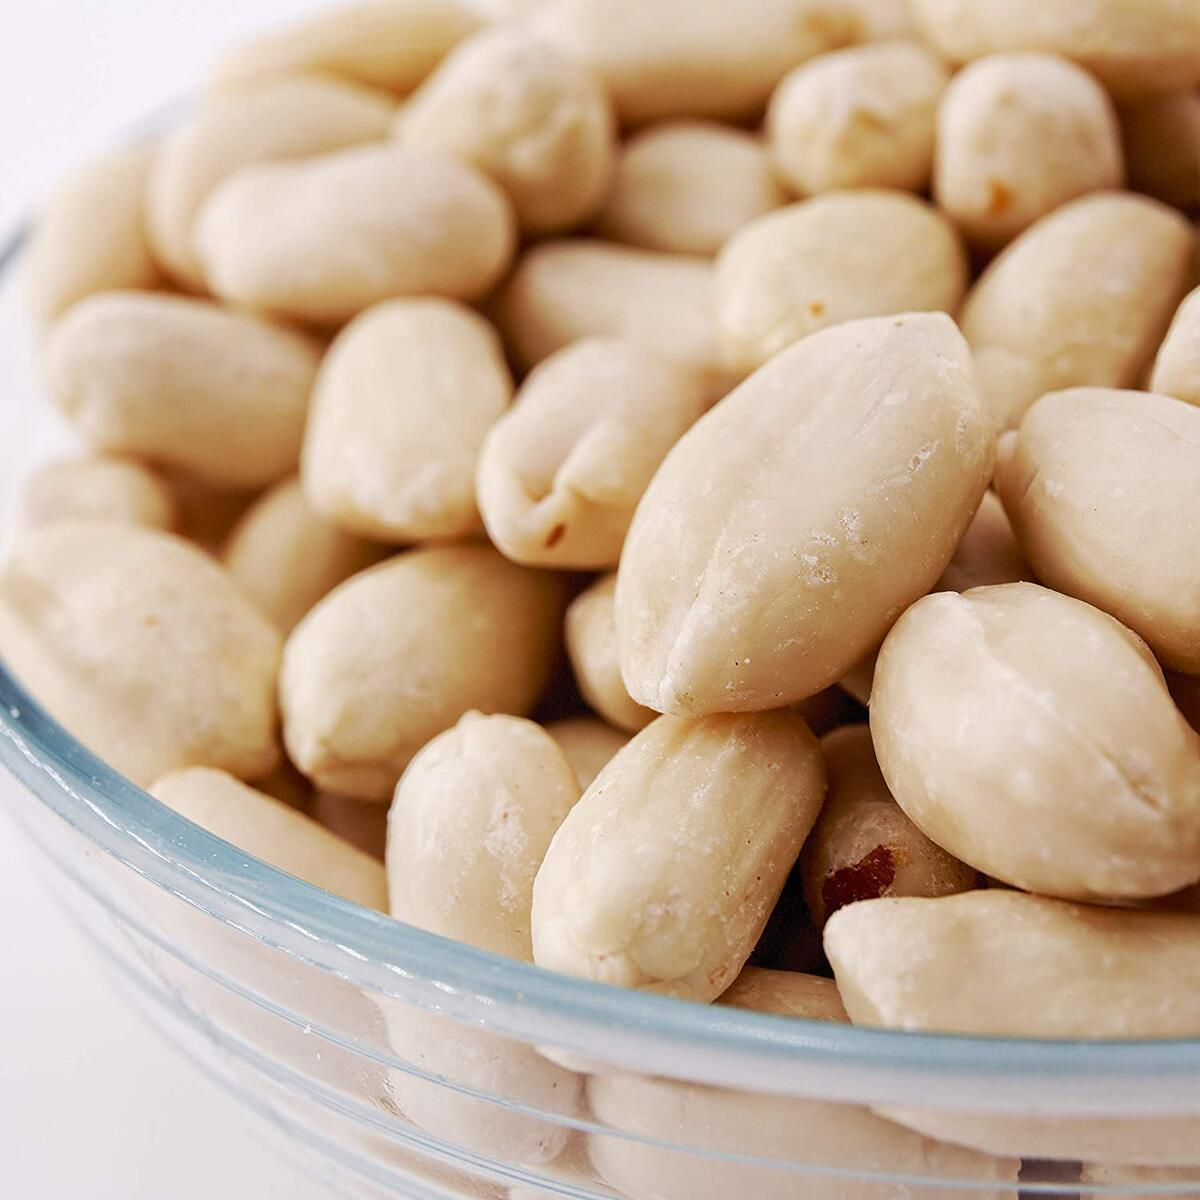 Sky   Premium USA Grown, Unsalted, Raw, Virginia Blanched Peanuts, Great for Peanut Butter, Peanut Brittle, Keto, Paleo, Better than Planters!